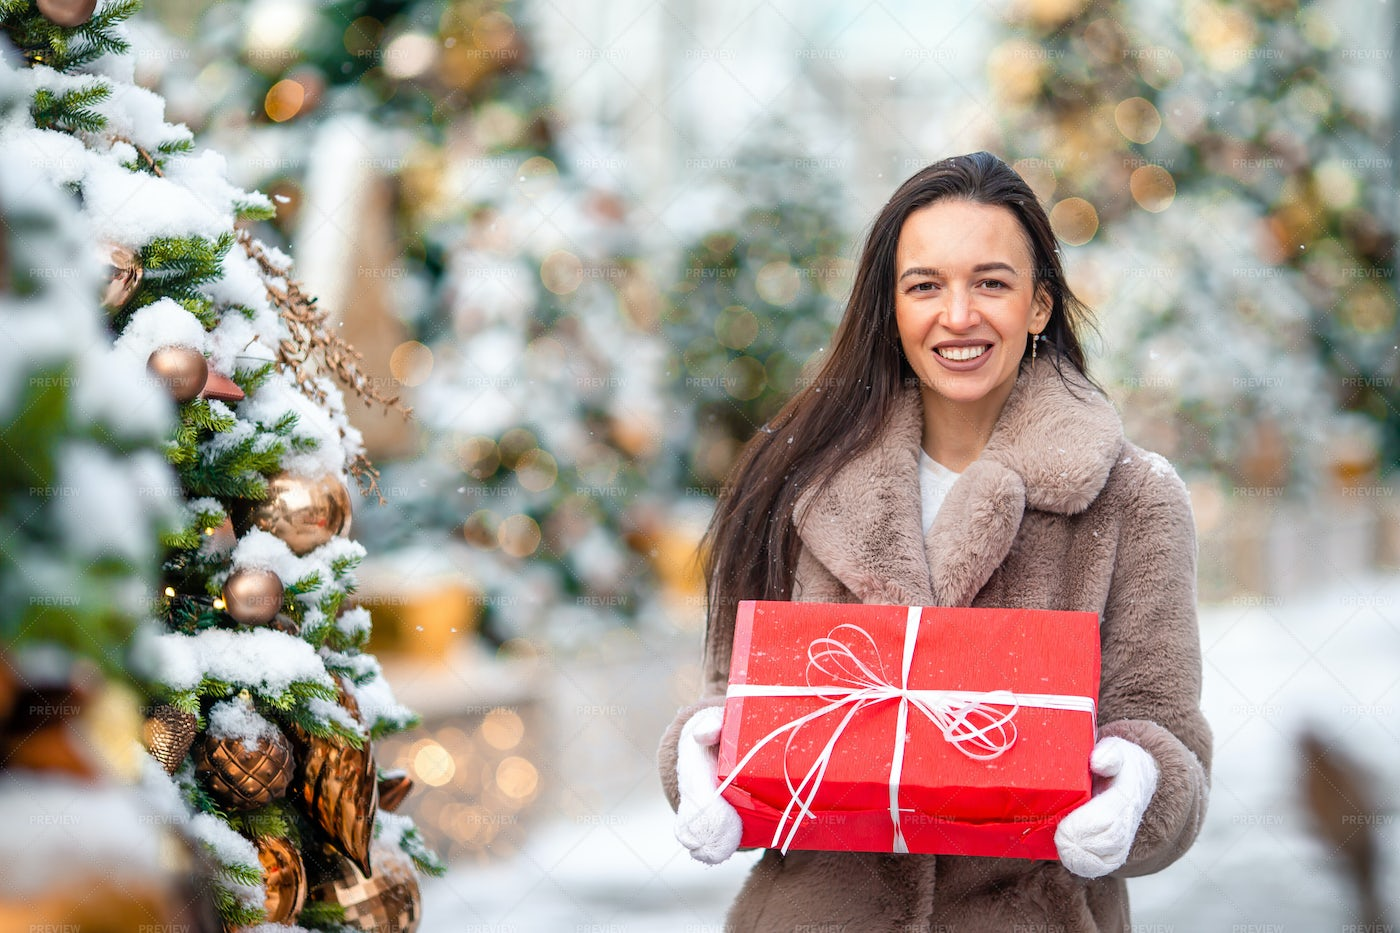 Christmas Present By The Tree: Stock Photos